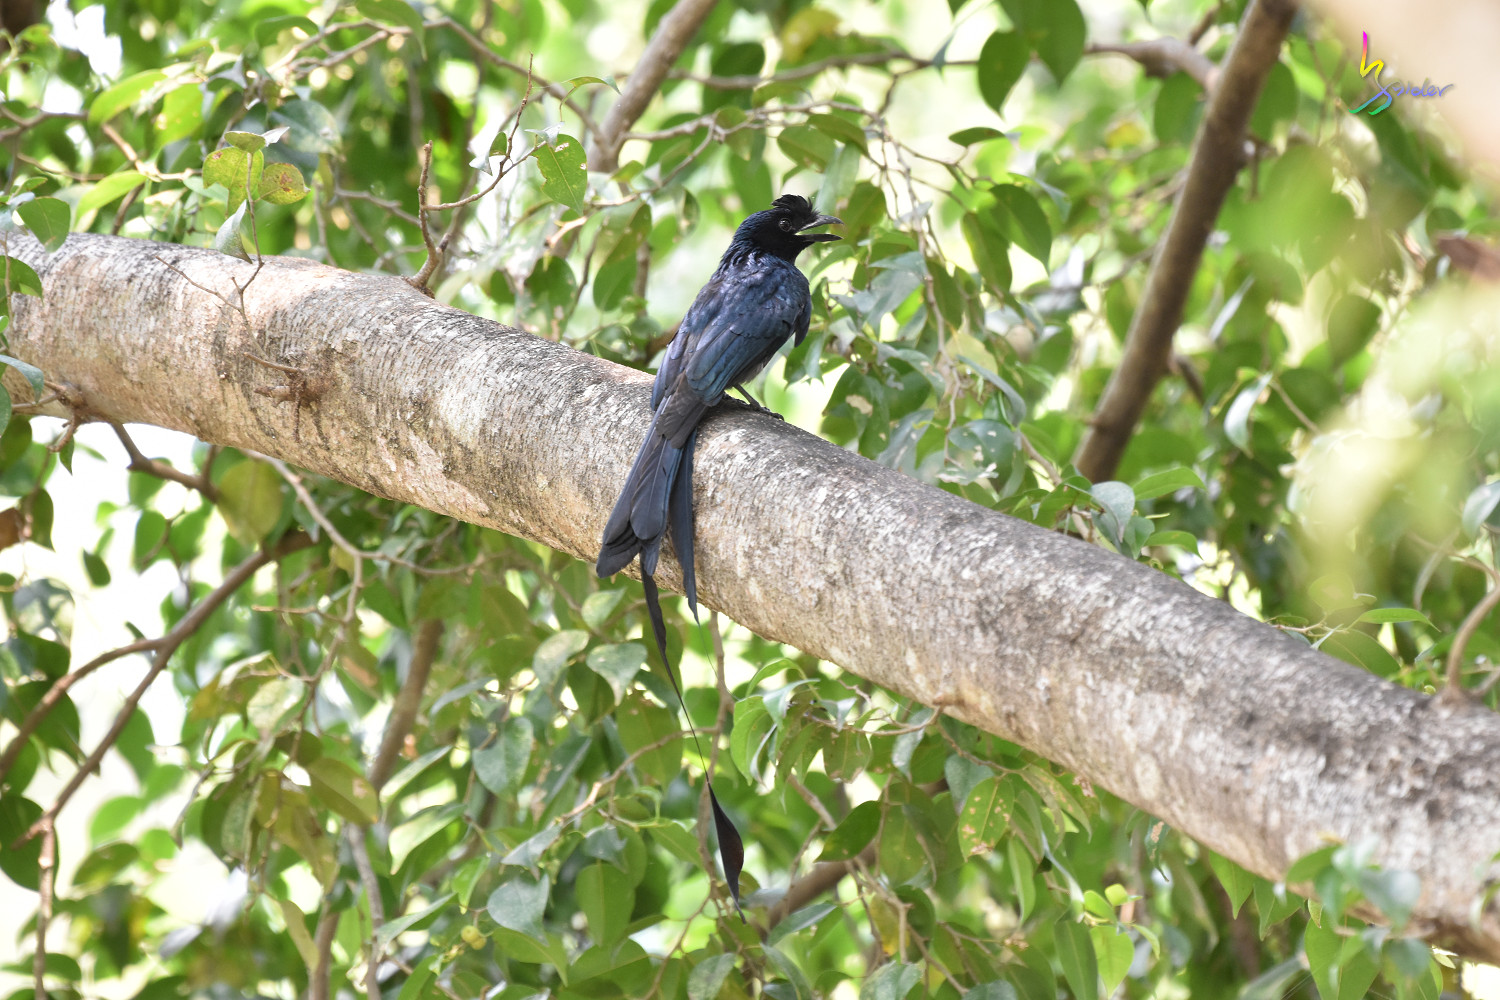 Greater_Racket-tailed_Drongo_8513